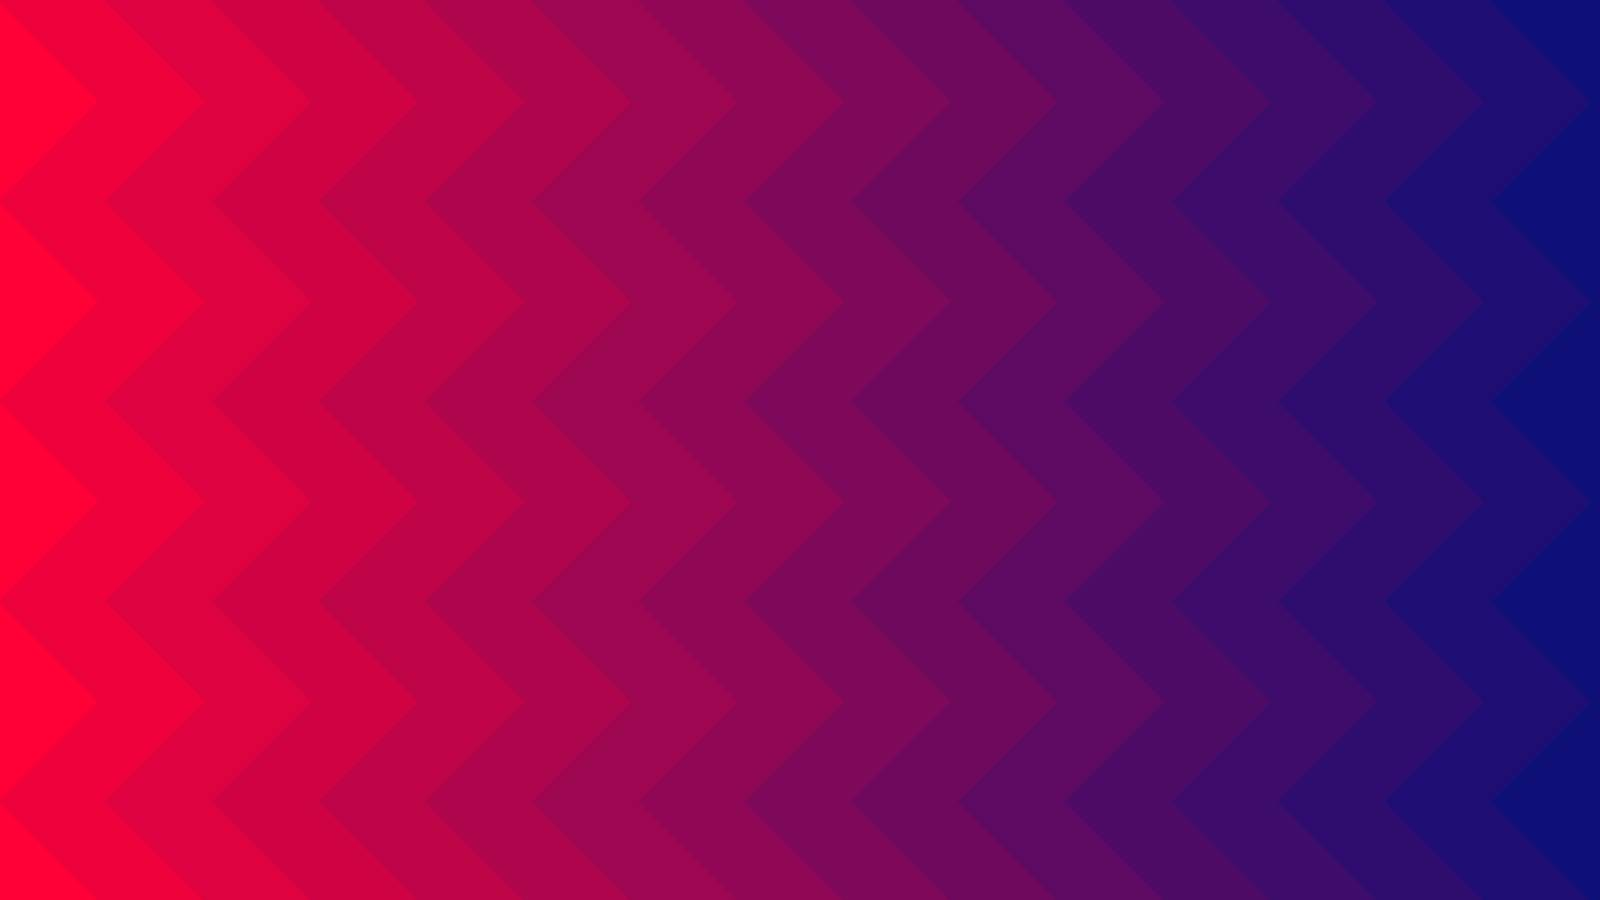 Hot Red and Deep Blue vector cover with zigzag. Modern abstract illustration for website, poster, banner ads.